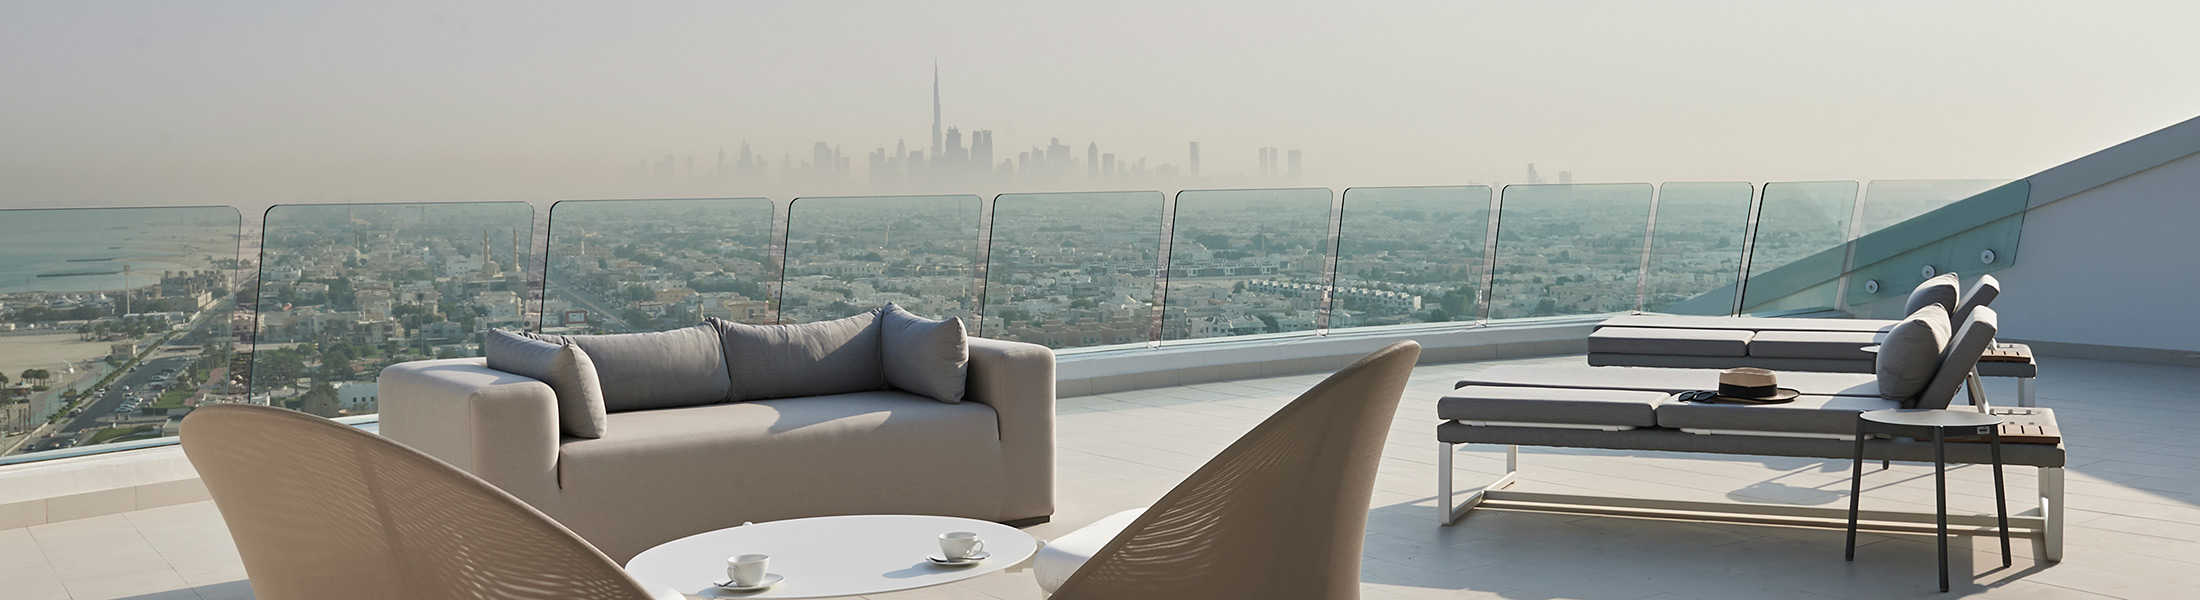 View from the Uptown Bar terrace at Jumeirah Beach Hotel